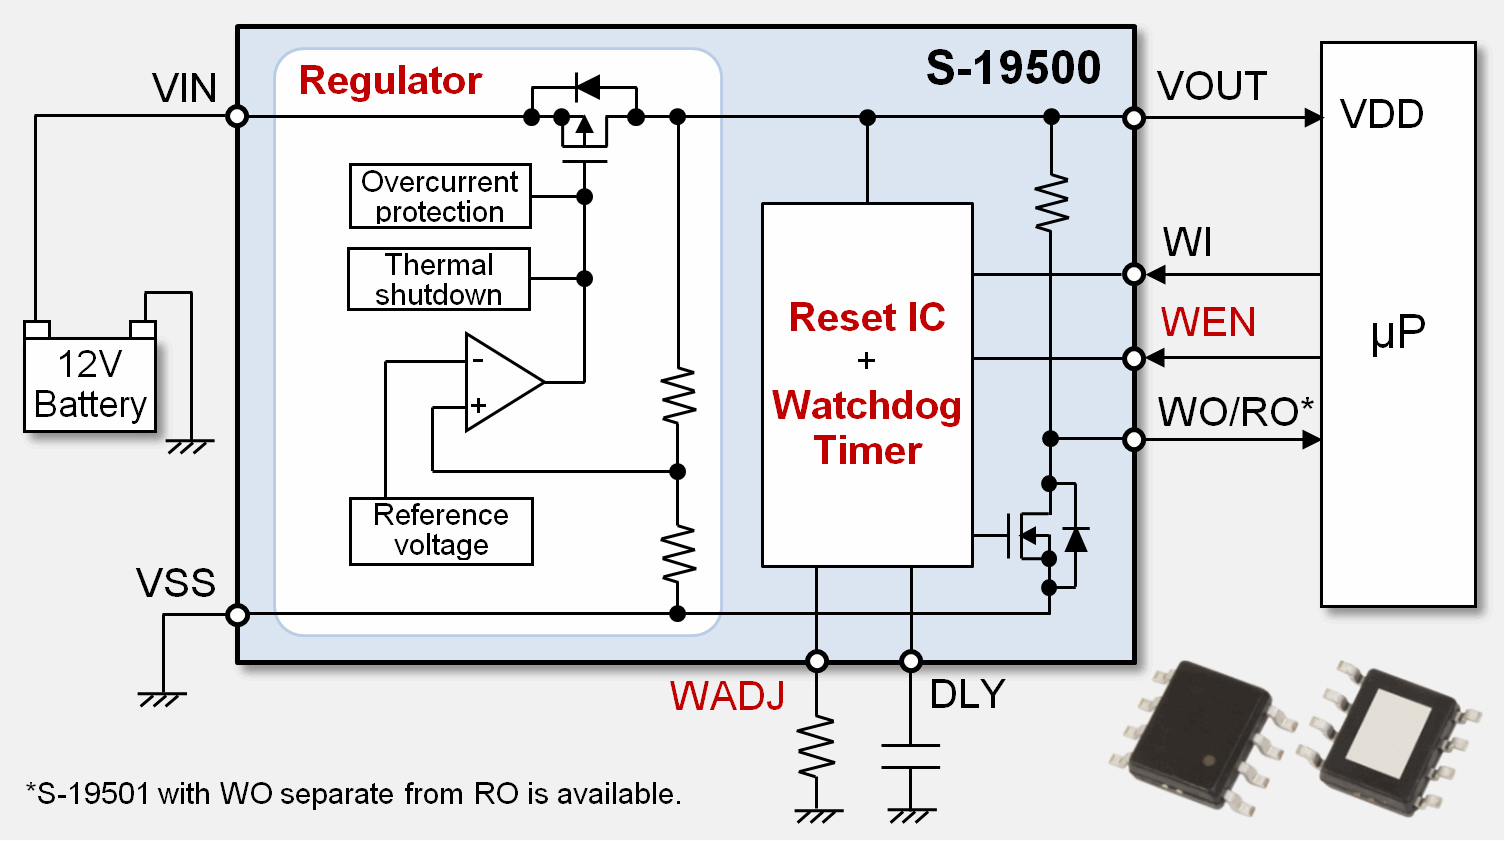 Seiko Instruments Releases The Innovative S 19500 19501 Series Ldo Electronic Watchdog Circuit Diagram Voltage Regulator With Timer And Reset Function For Automotive Applications